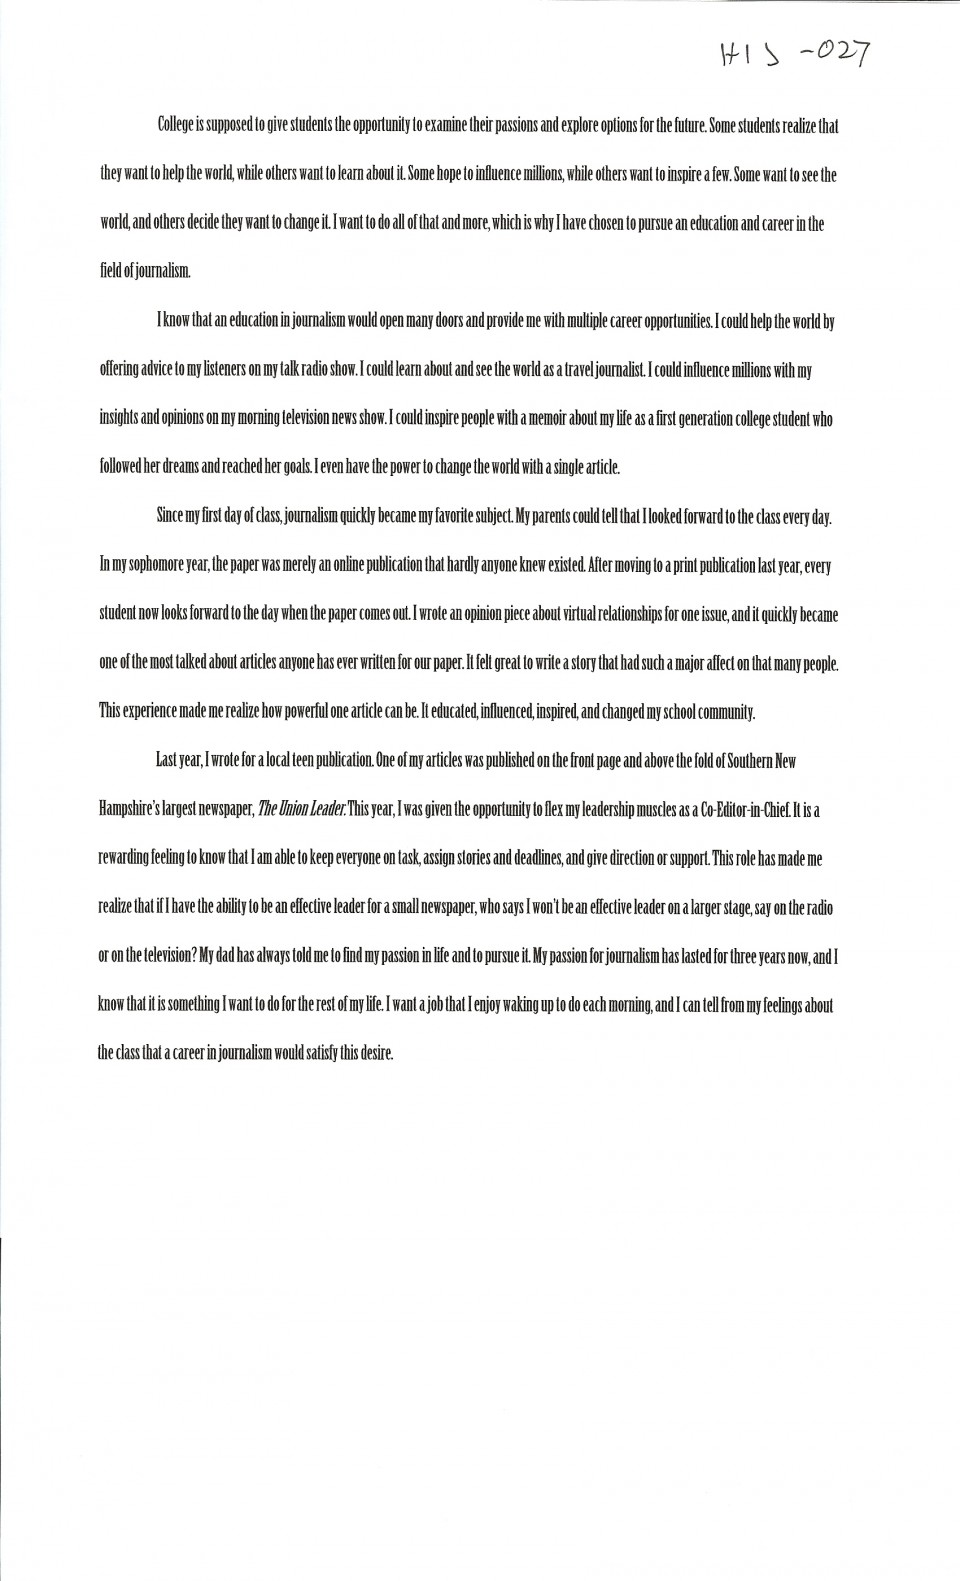 026 Essay Example First Day College Magnificent At Quotations My Pdf 960